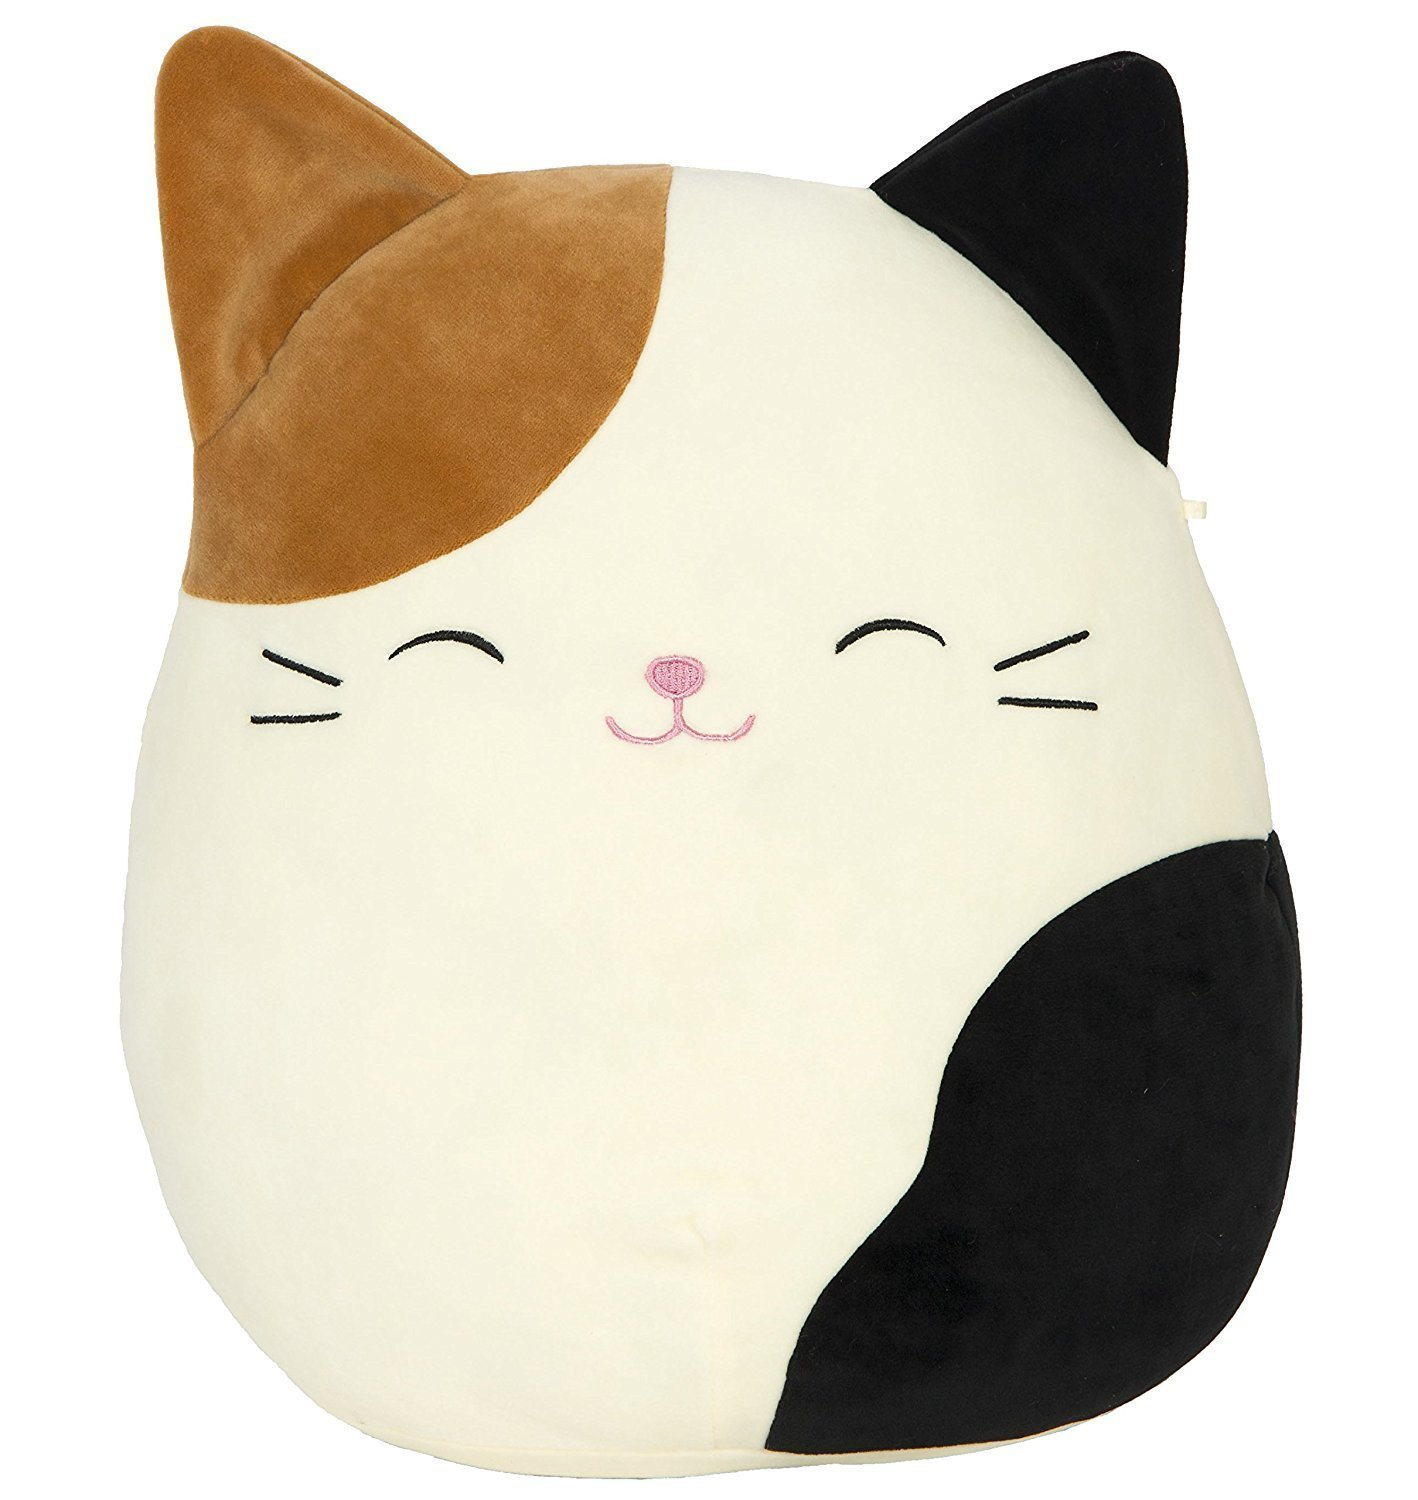 "KellytoySquishmallow 16"" Cam The Cat Super Soft Plush Toy Pillow Pet Animal Pillow Pal Buddy"